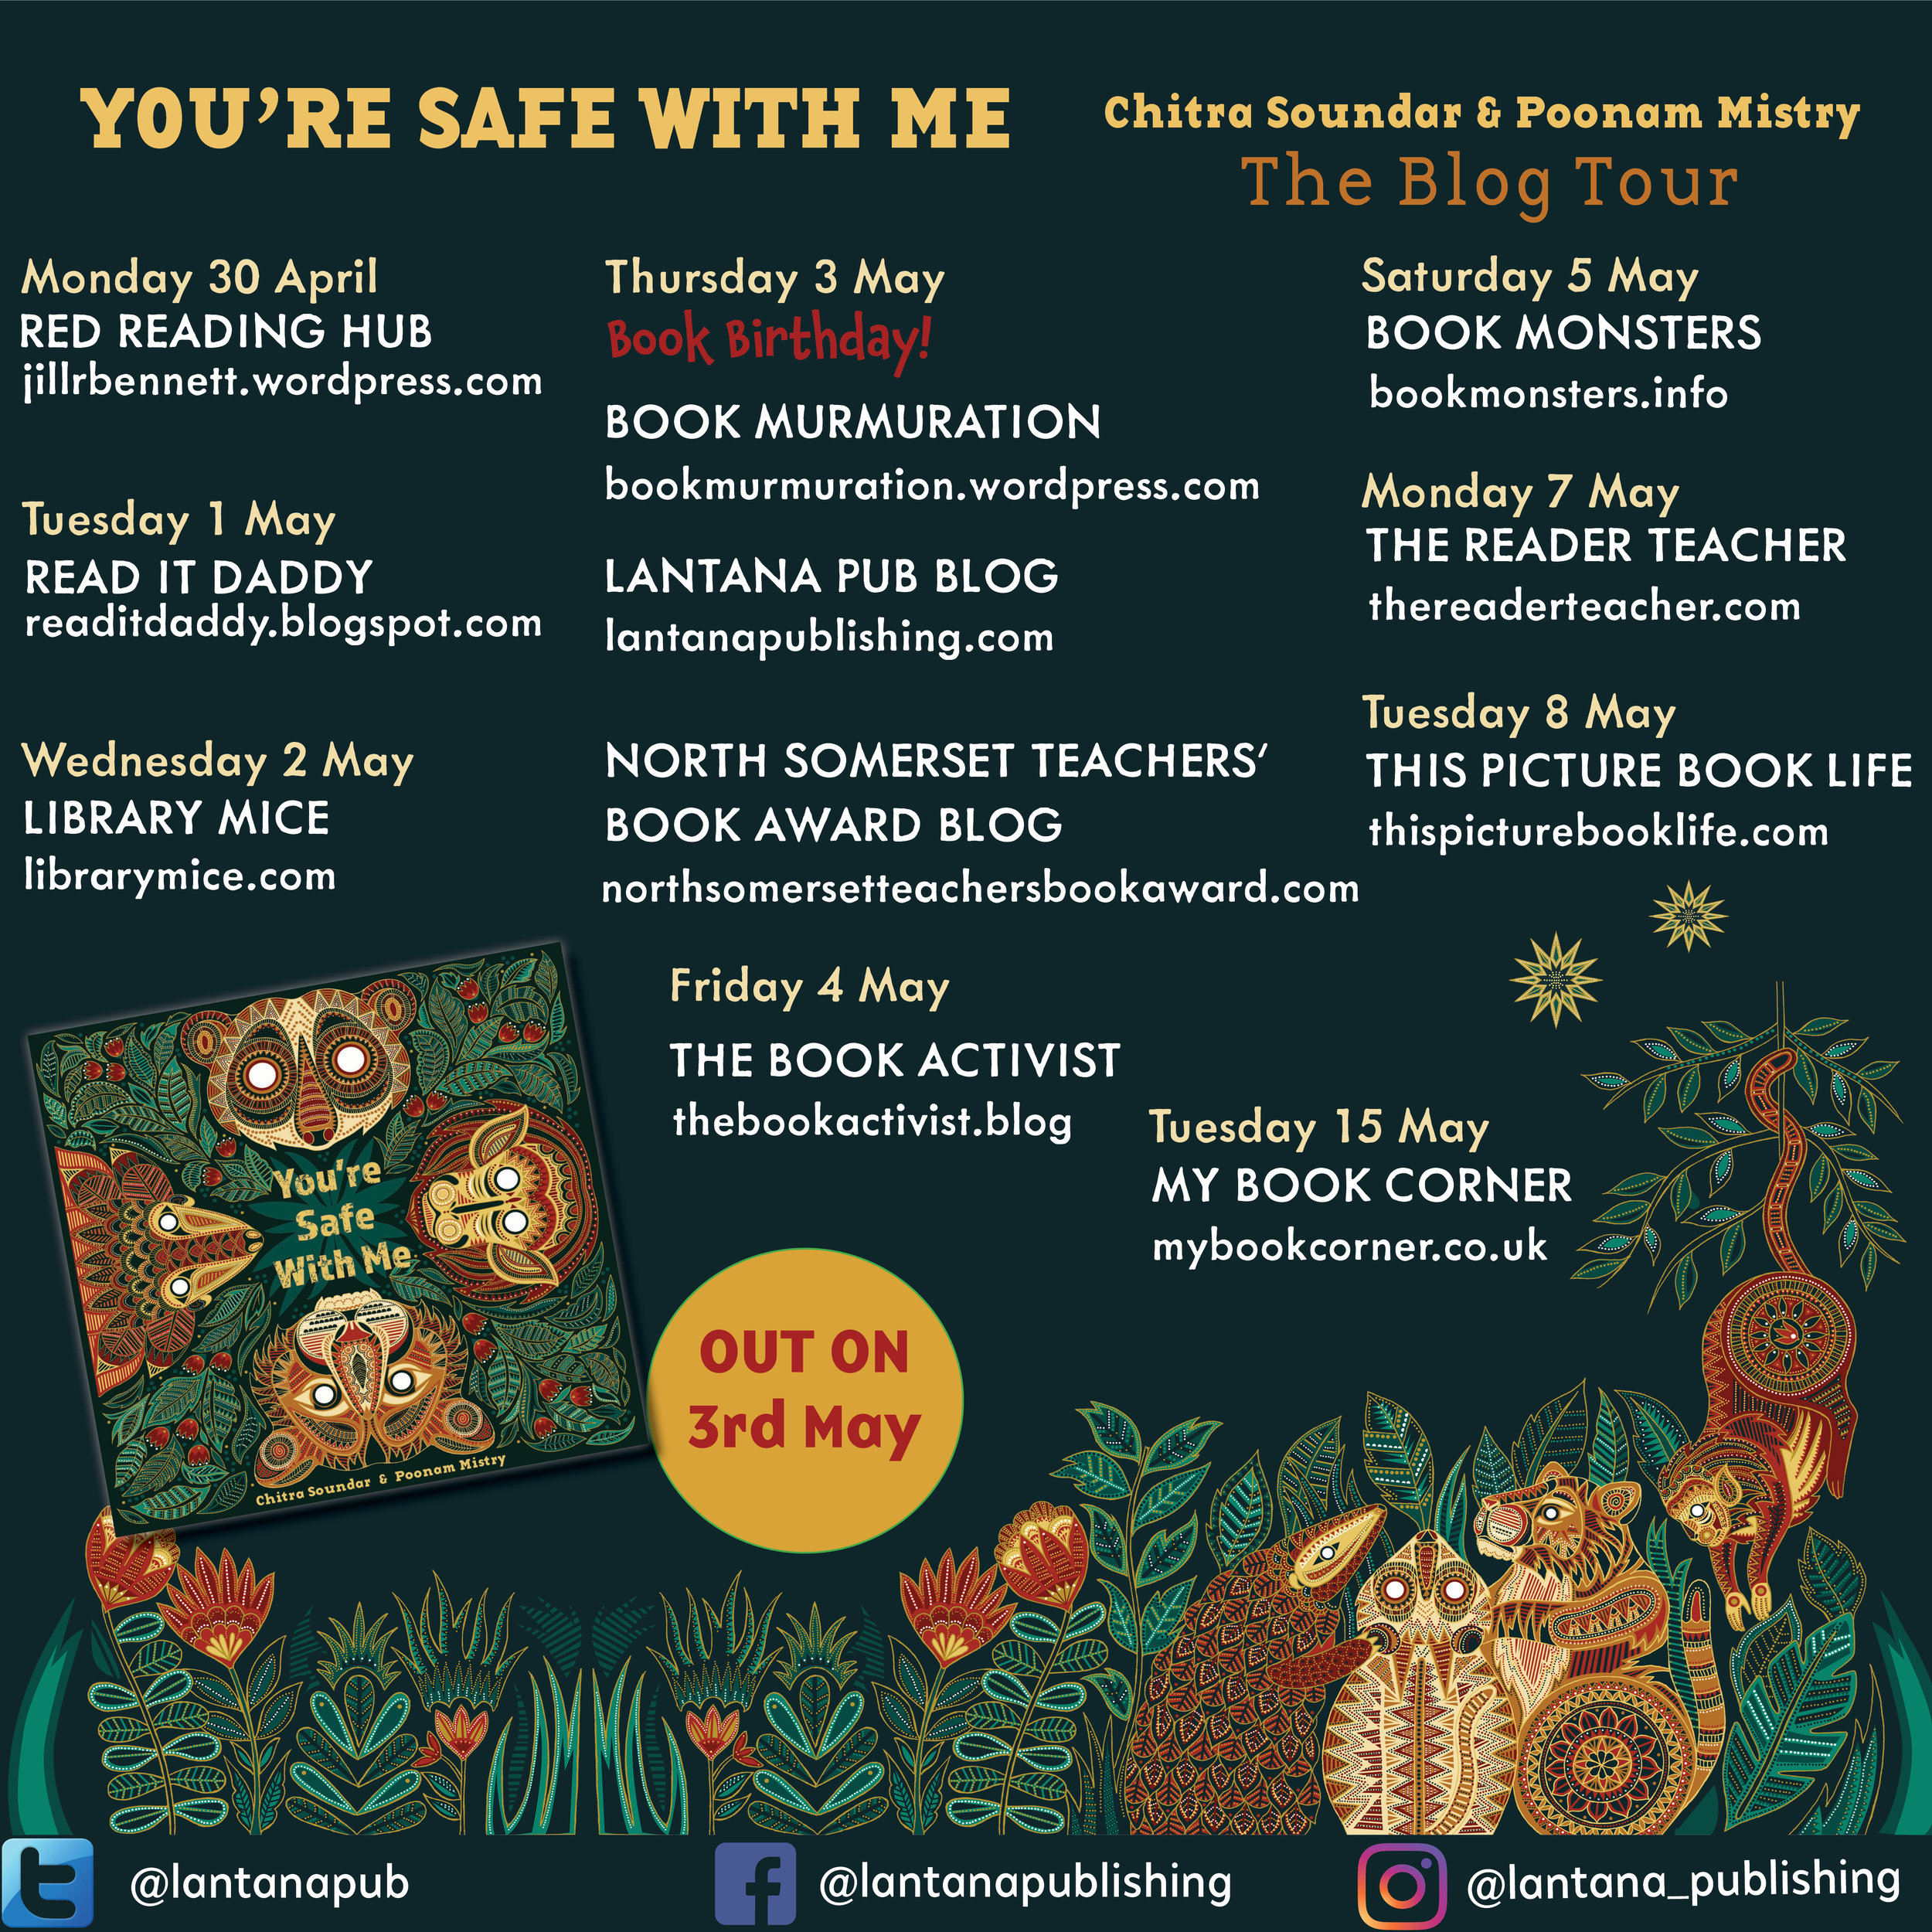 You're Safe With Me blog tour announcement (1).jpg